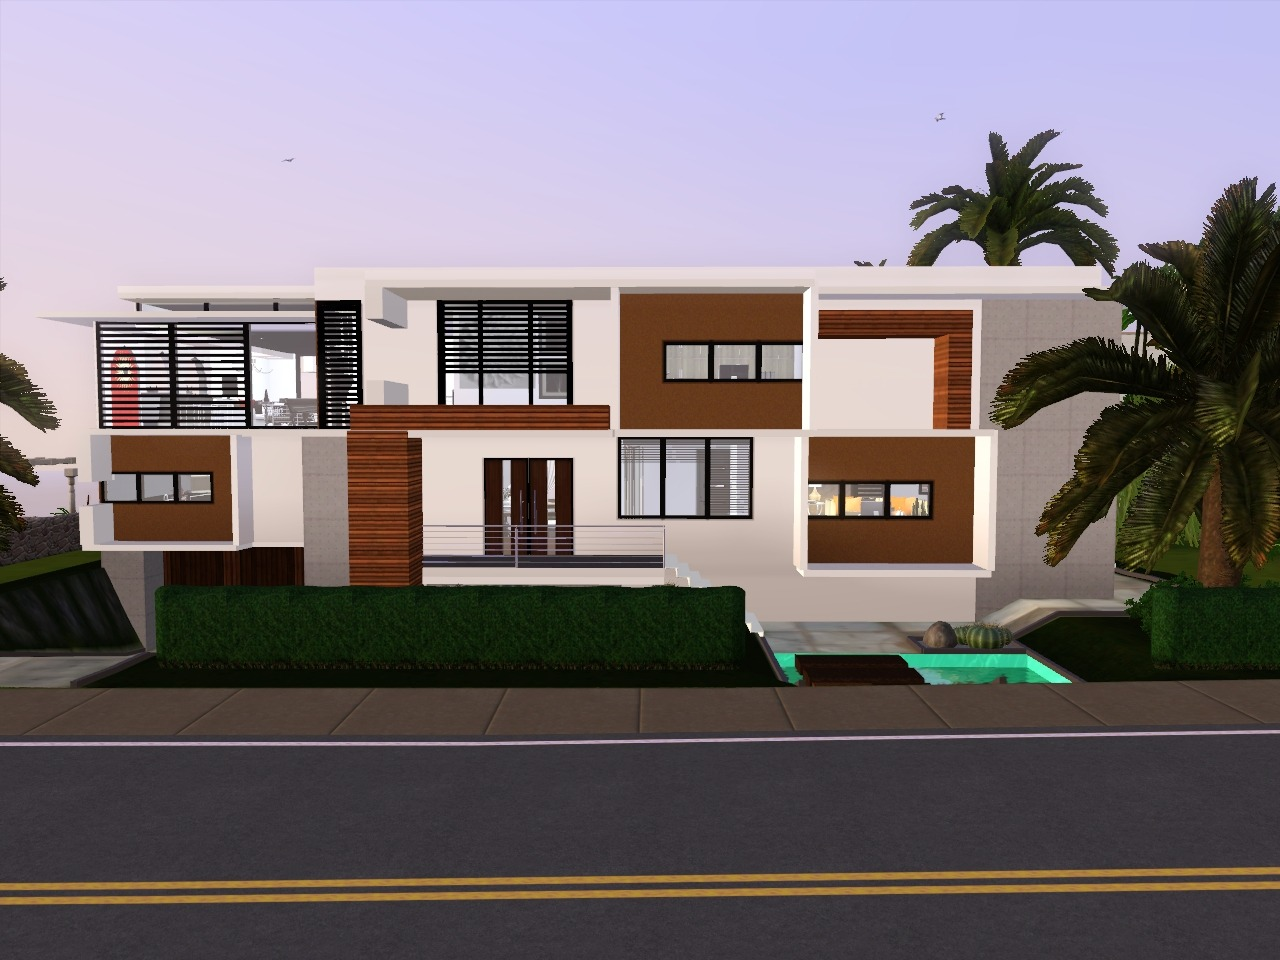 Hey guys! My new house up for downloads :) So Ive finally uploaded my new house.Sorry for the long wait, I had school to start and I needed to focus on school.For  this house, I tried to combine traditional elements with more modern  ones. I think it turned out great! :) So I hope the same for you!Download for the house: http://www.megaupload.com/?d=04P247XVThe house is set in a town called Red County. Heres the link:http://www.thesims3.com/assetDetail.html?assetId=2791535Im still not too good at making Infinity Pools so please forgive me x] and if you know how, please let me know! :DThe intro is not made by me, its a template :) Song is Brand New Chick- Remix / InstrumentalHope you enjoyed the video! :D Please like, rate and comment!  and of course, subscribe! ;3